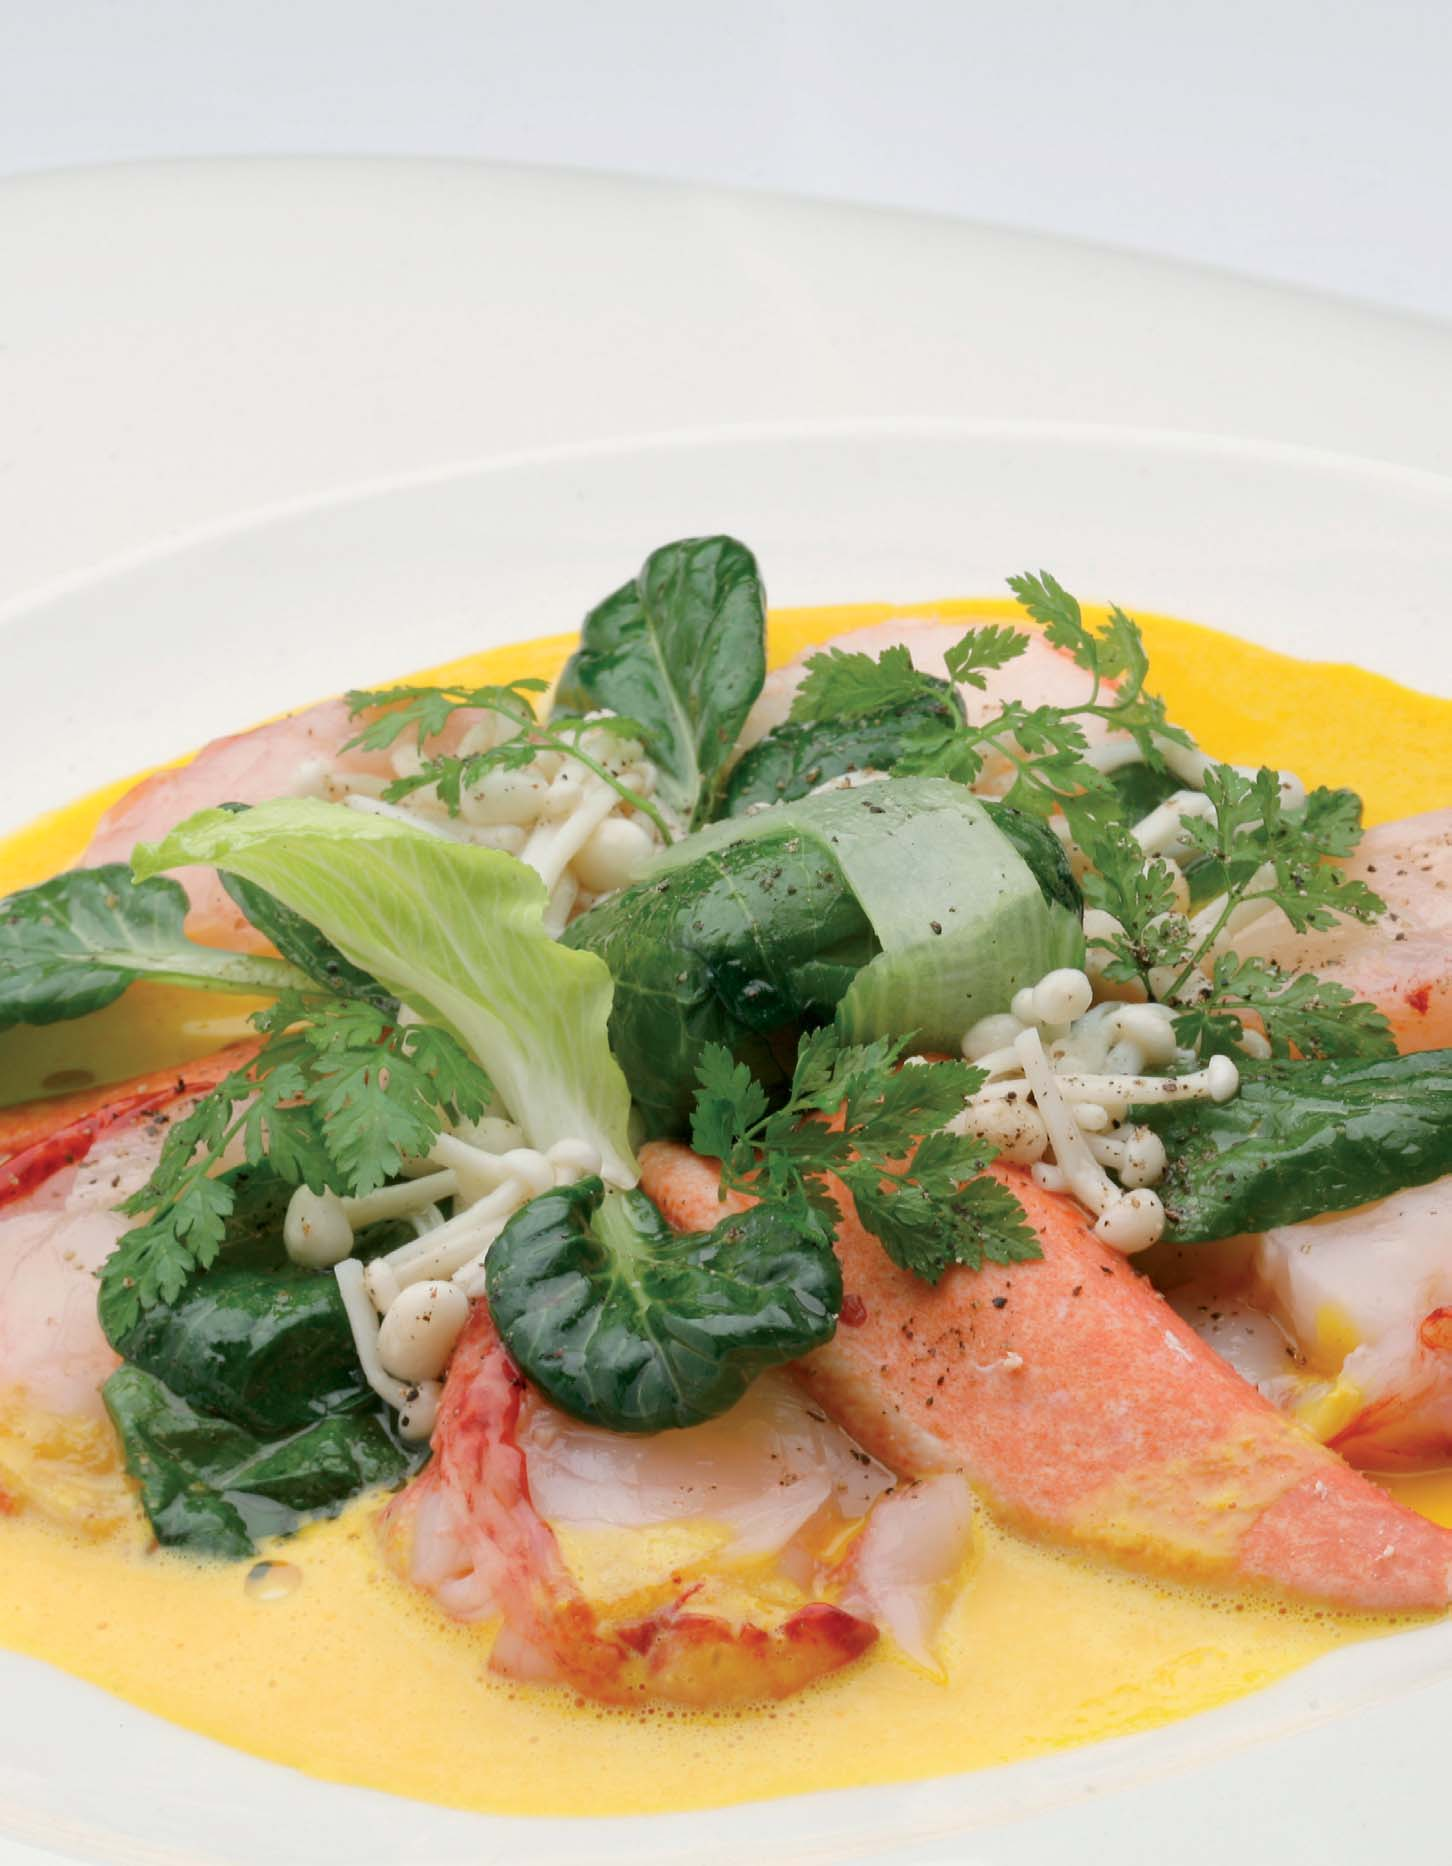 Medallions of Atlantic lobster with Pak Choi, Hierbas de Mallorca and Saffron Stock and Enoki mushrooms - Recipes - Gastronomy - Balearic Islands - Agrifoodstuffs, designations of origin and Balearic gastronomy